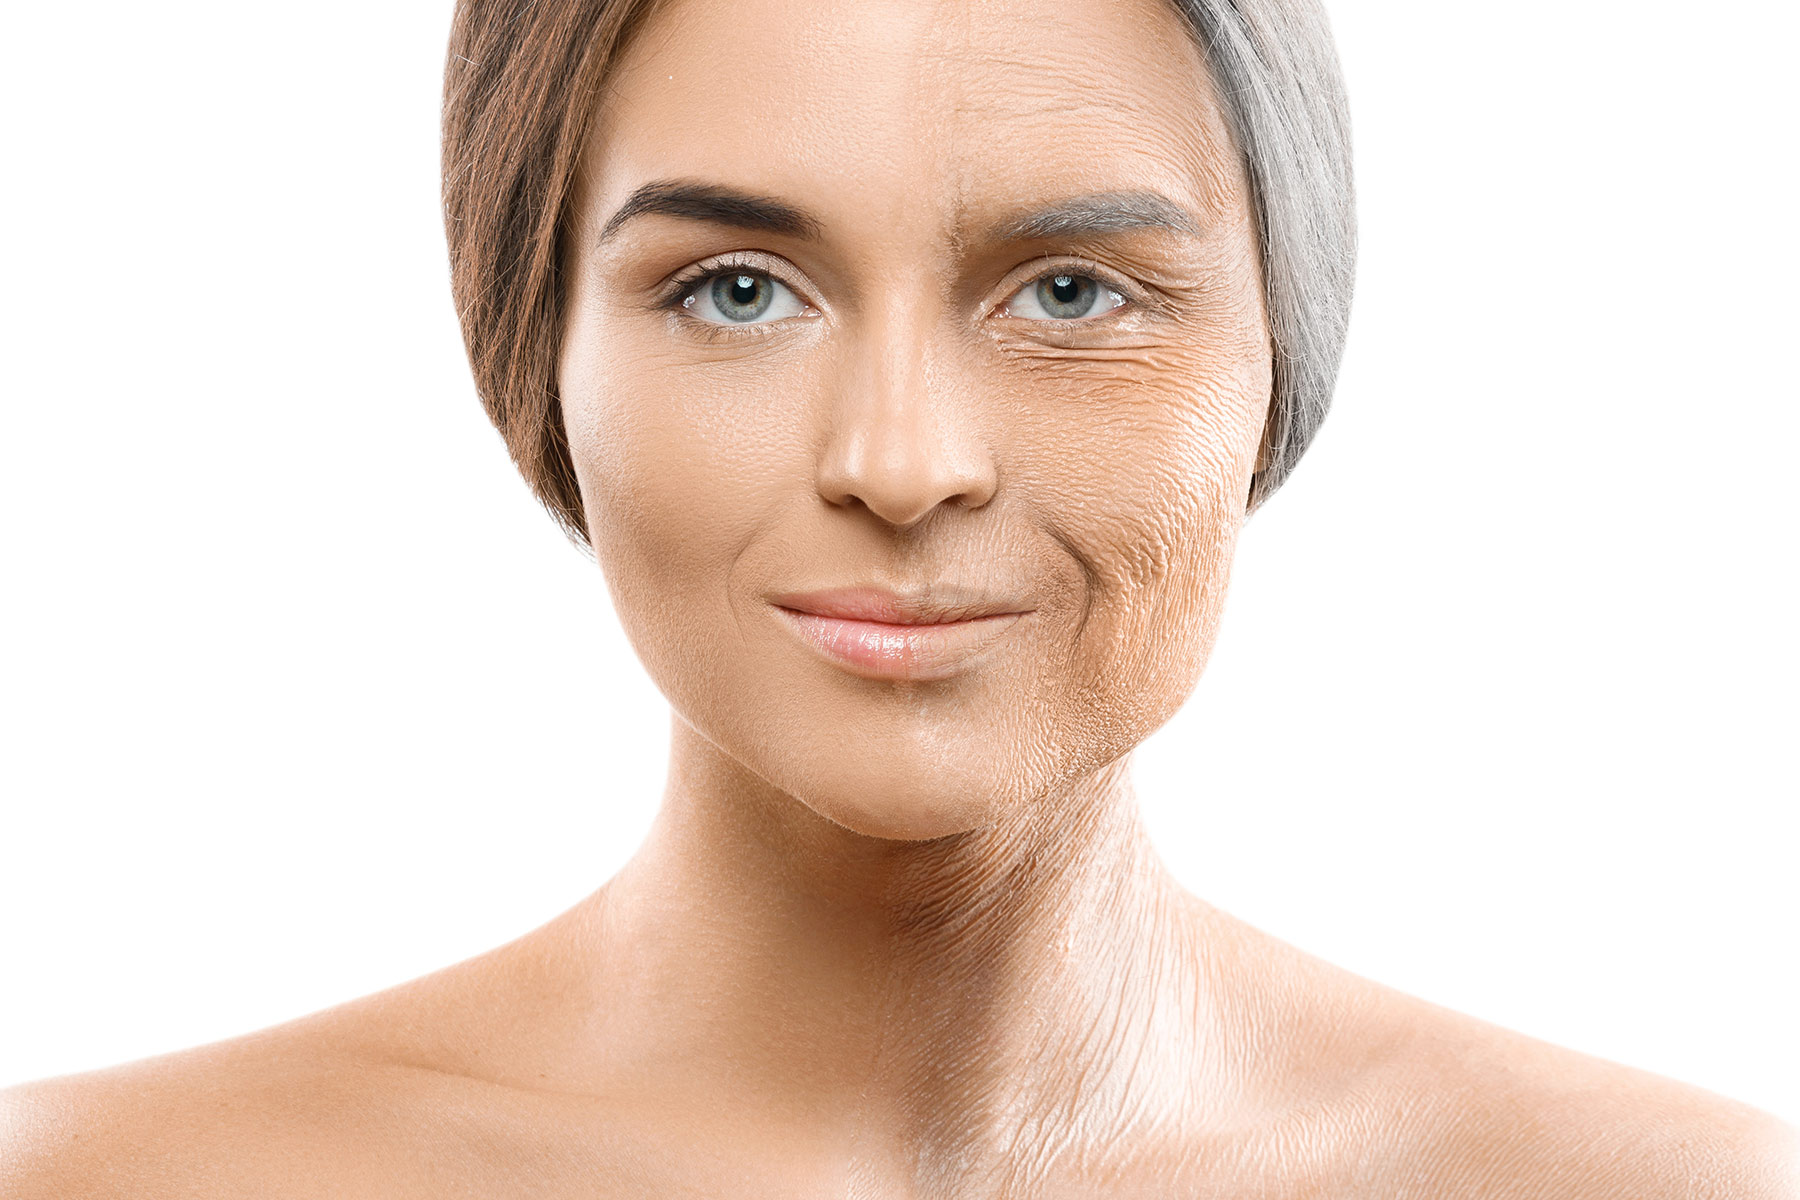 Can other procedures be helpful with facelift surgery?